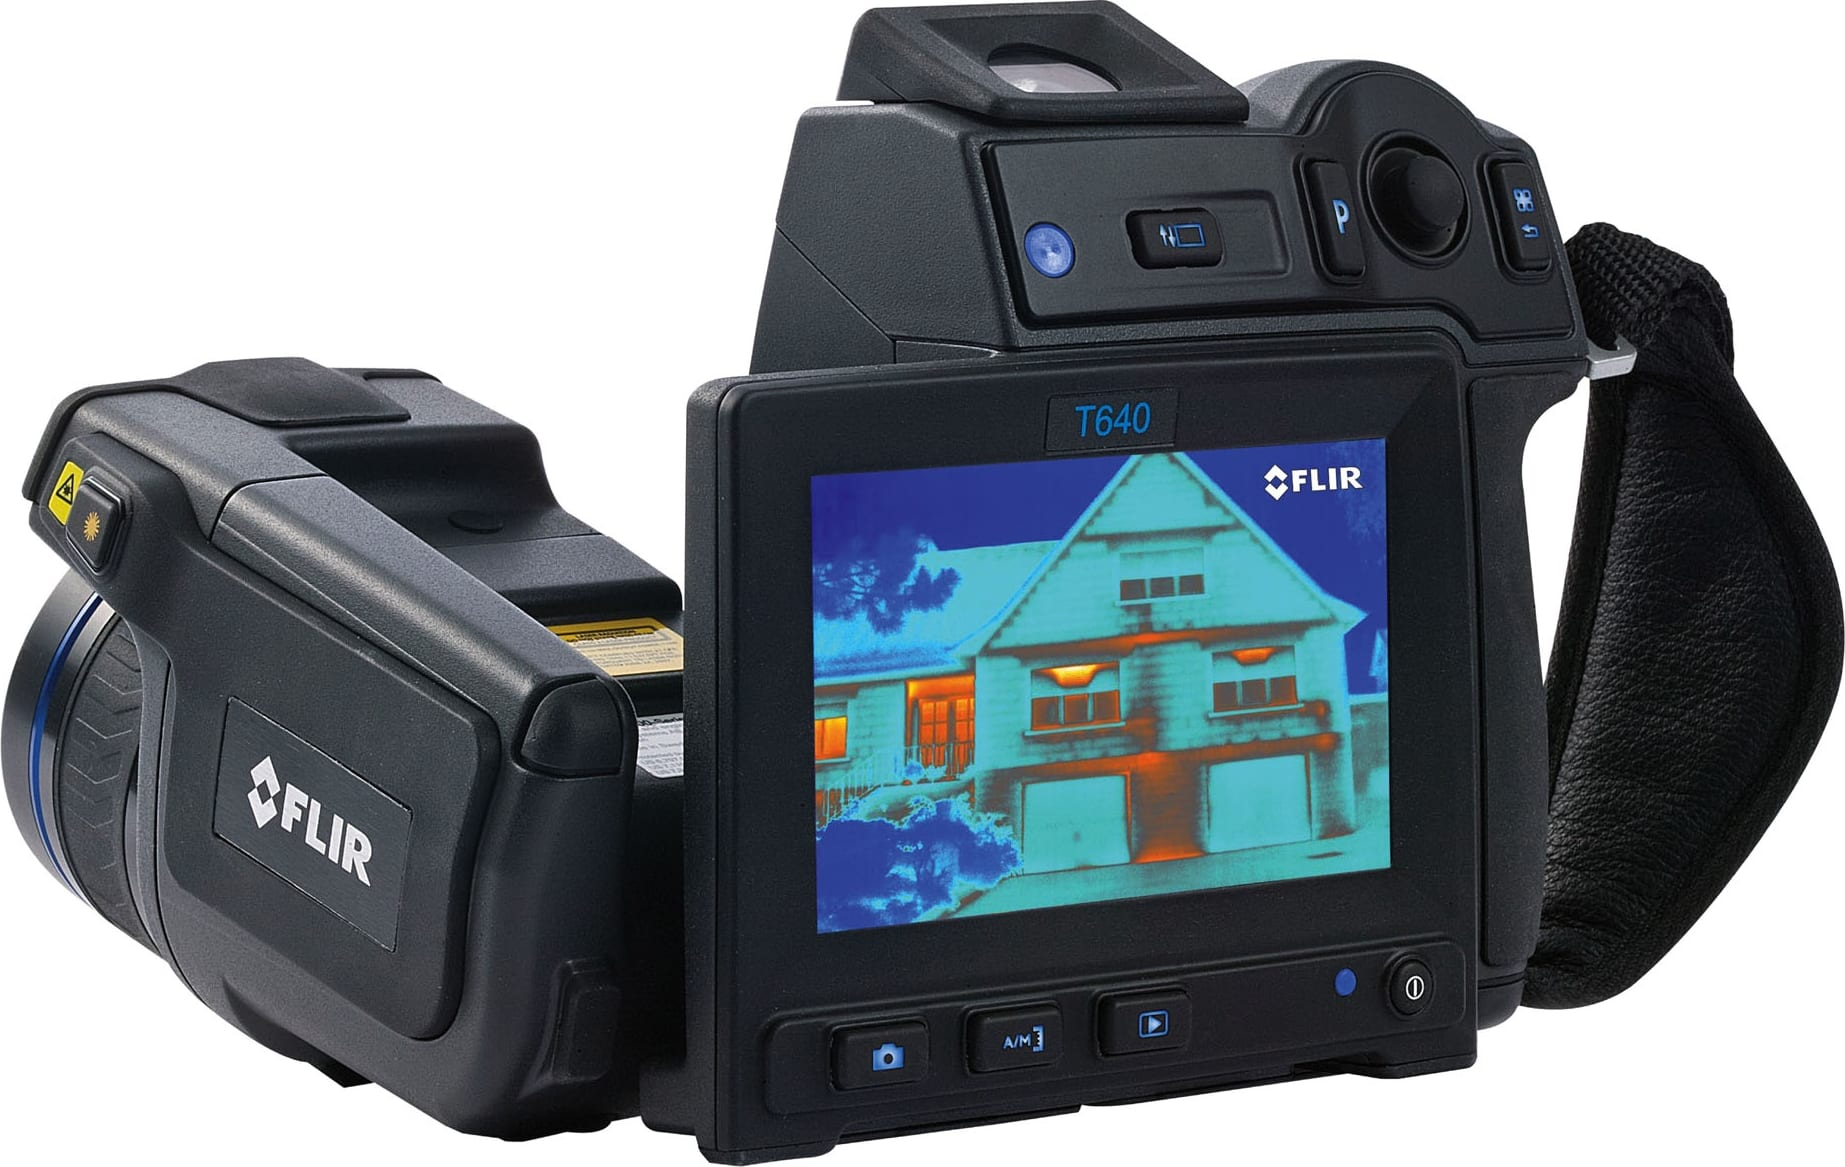 FLIR_T640bx-45_Infrared_Imaging_Camera_For_Building_Maintenance_640_x_480_Resolution-30Hz_With_45-Degree_Lens_Main_View